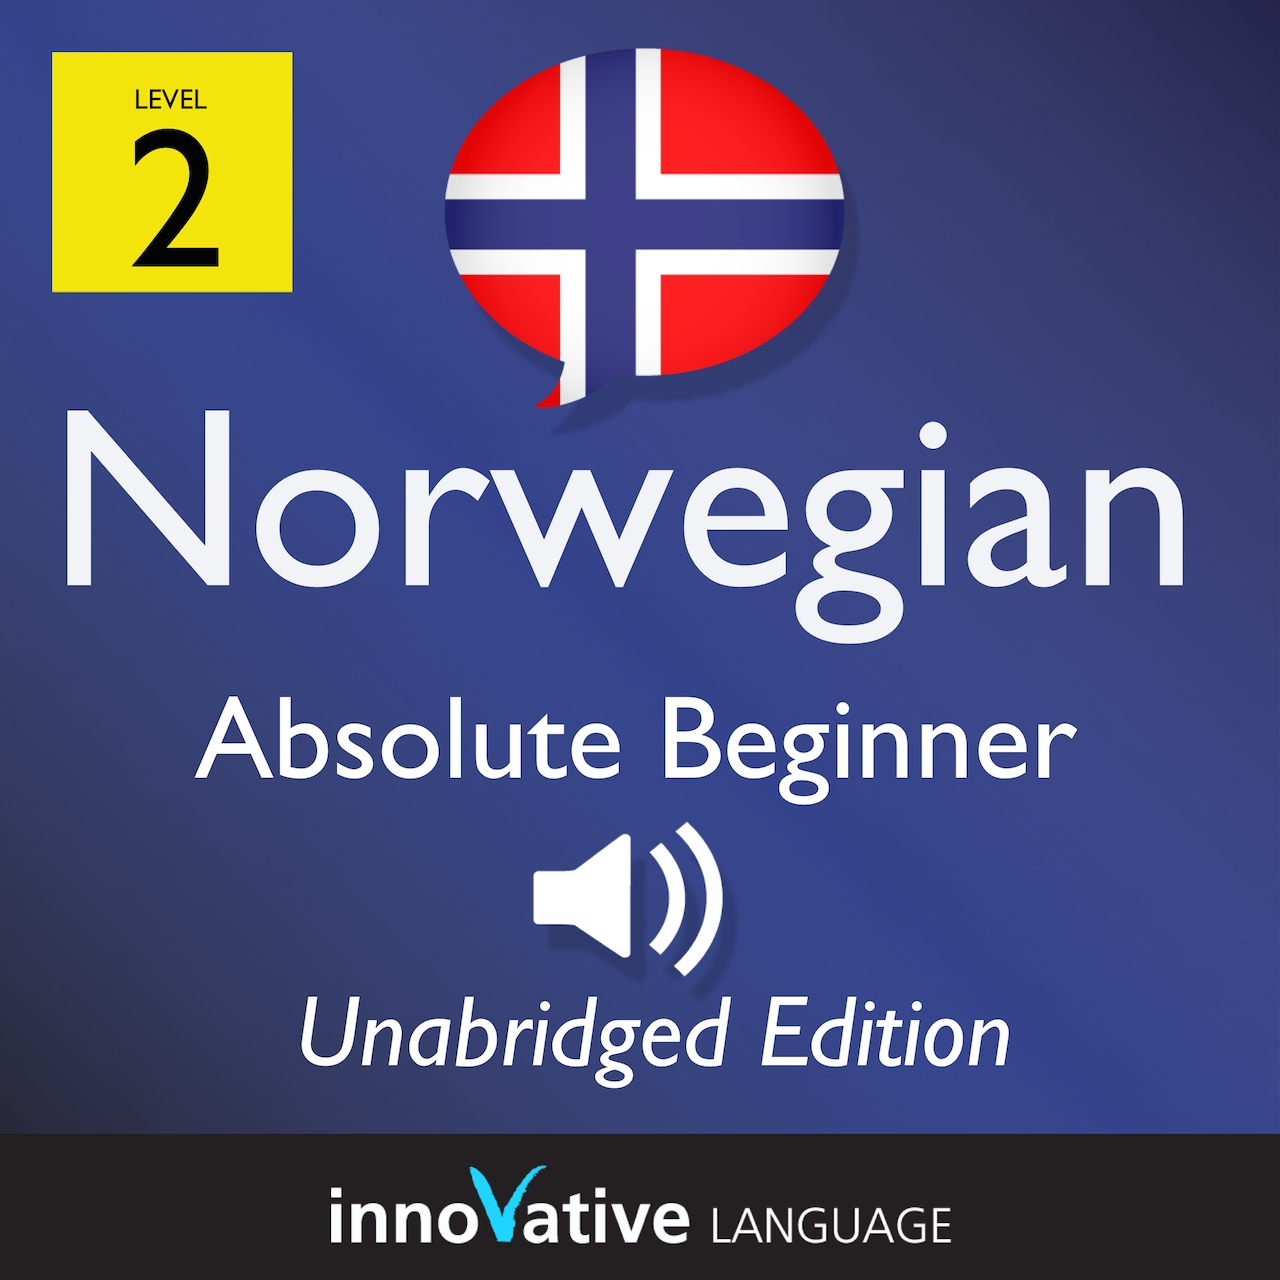 Audiobook Norwegian - Level 2: Absolute Beginner Norwegian, Volume 1